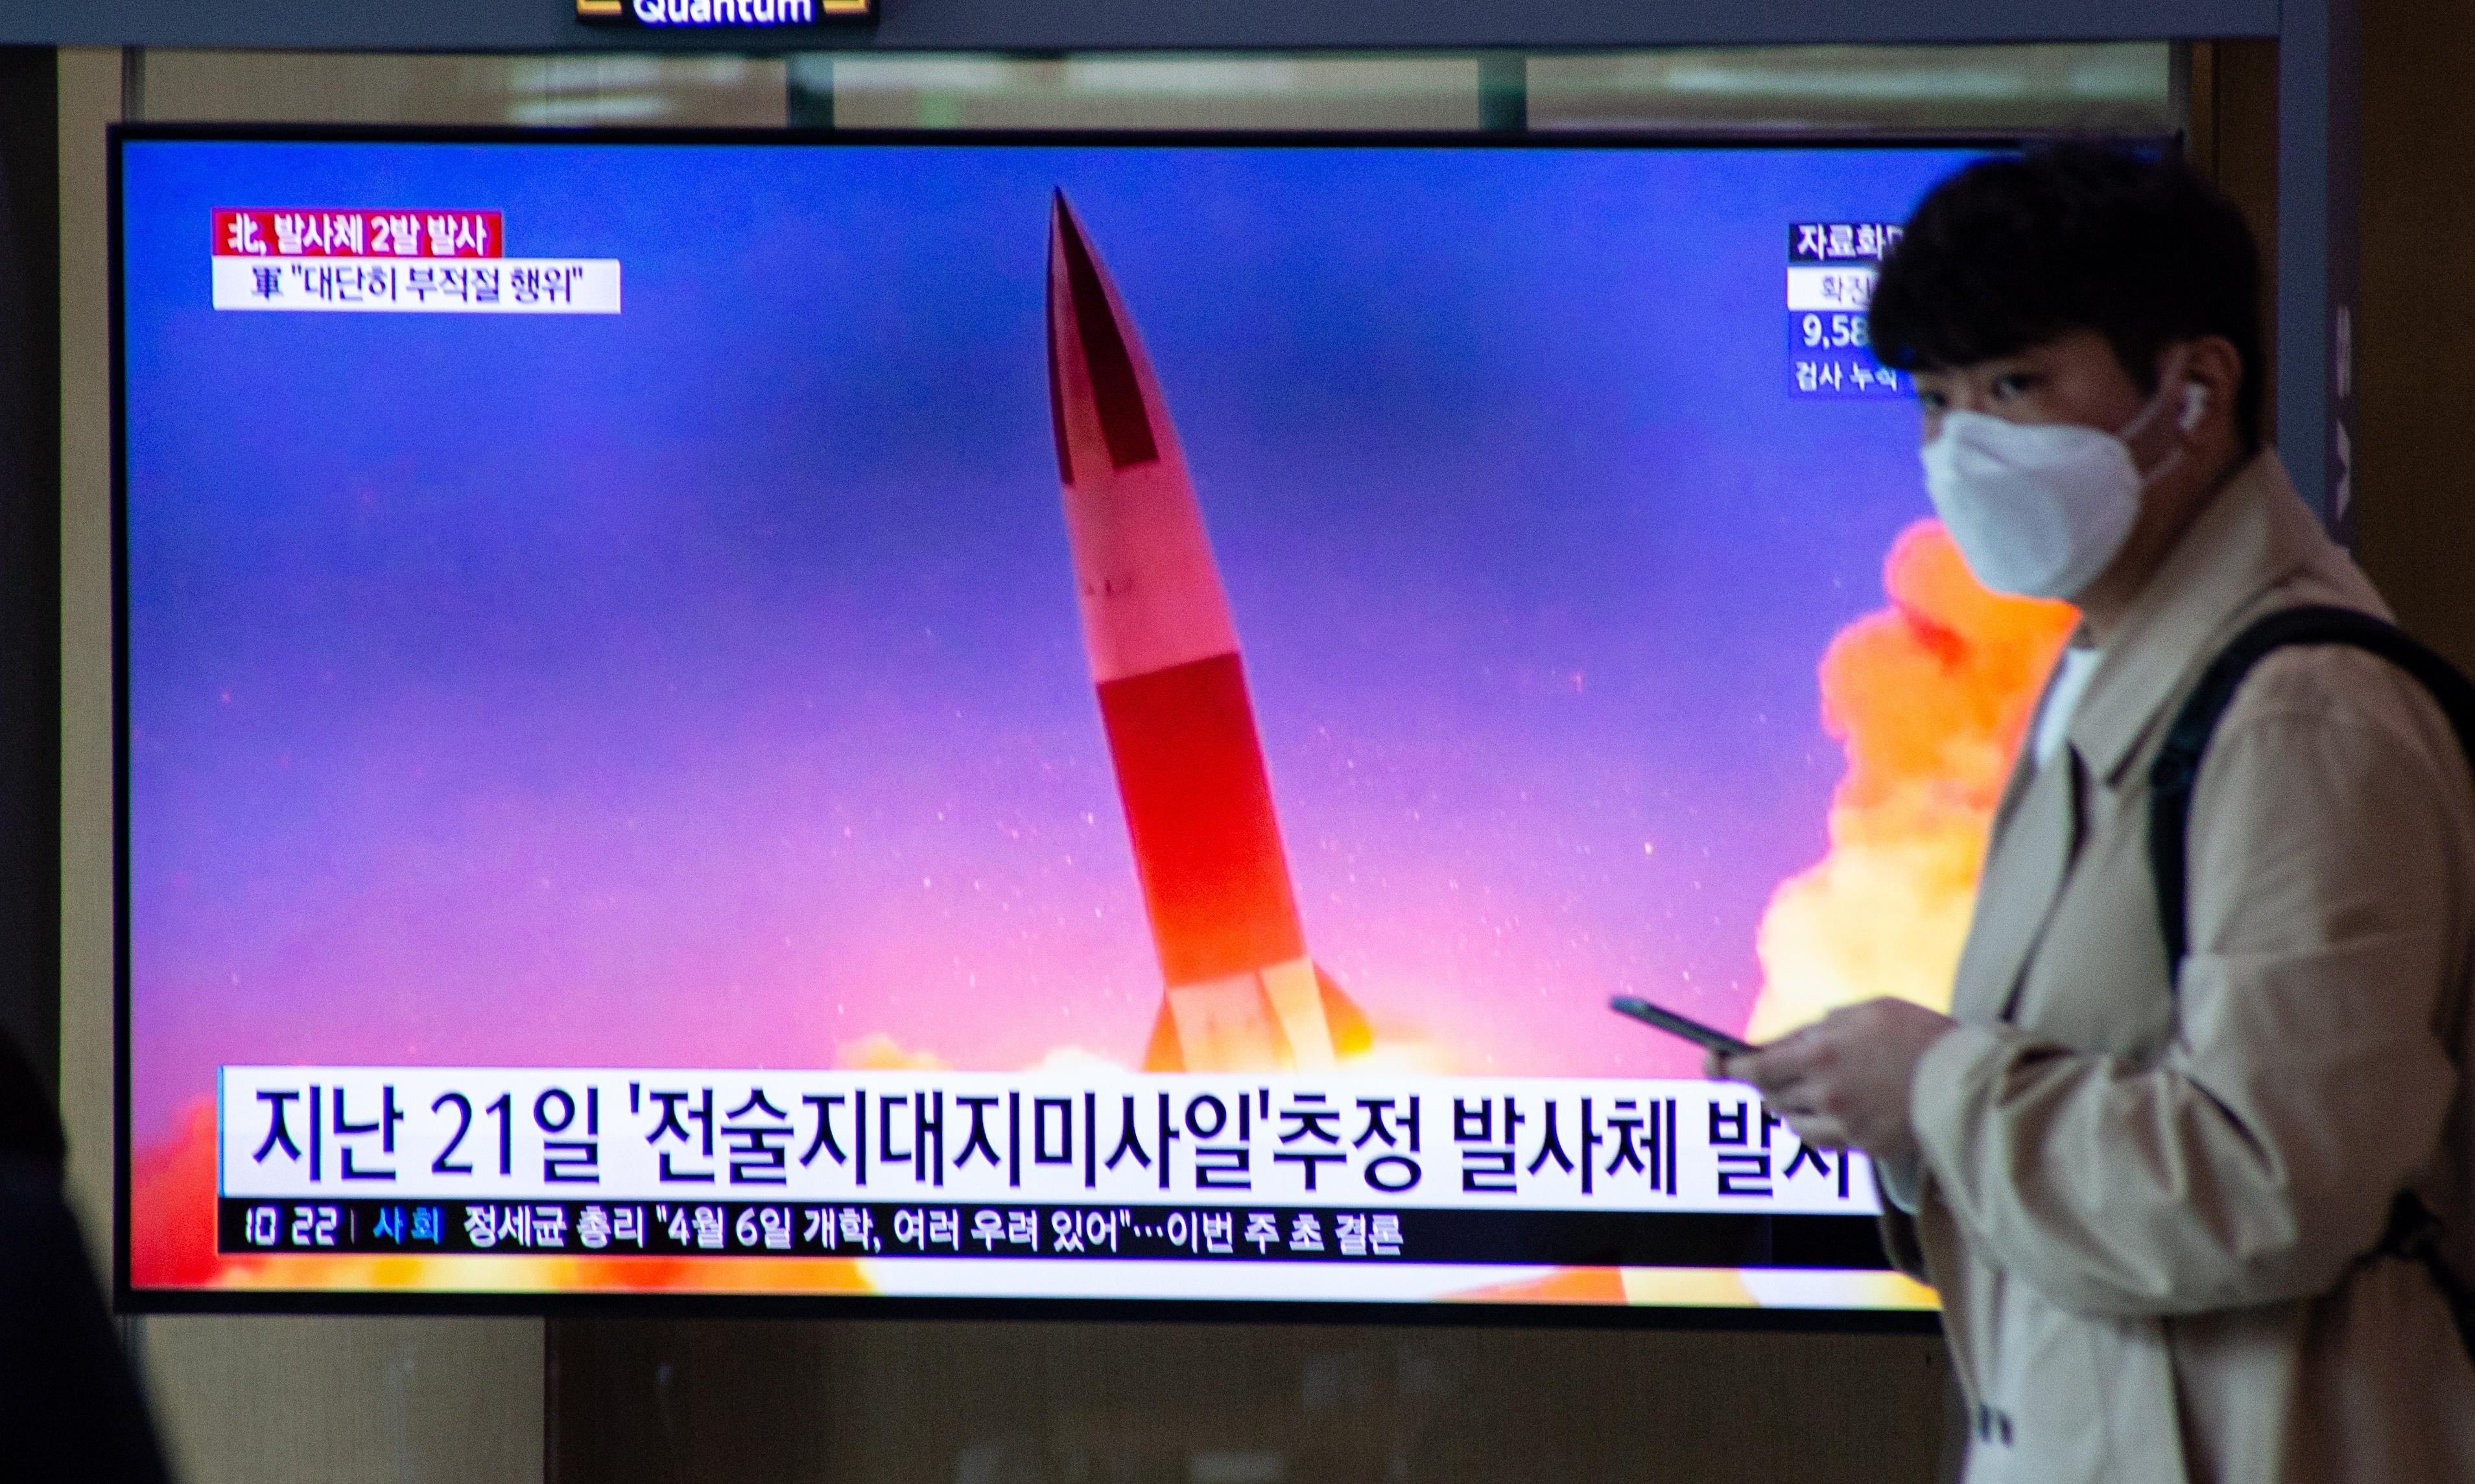 North Korea fires two missiles as Seoul condemns 'inappropriate' timing